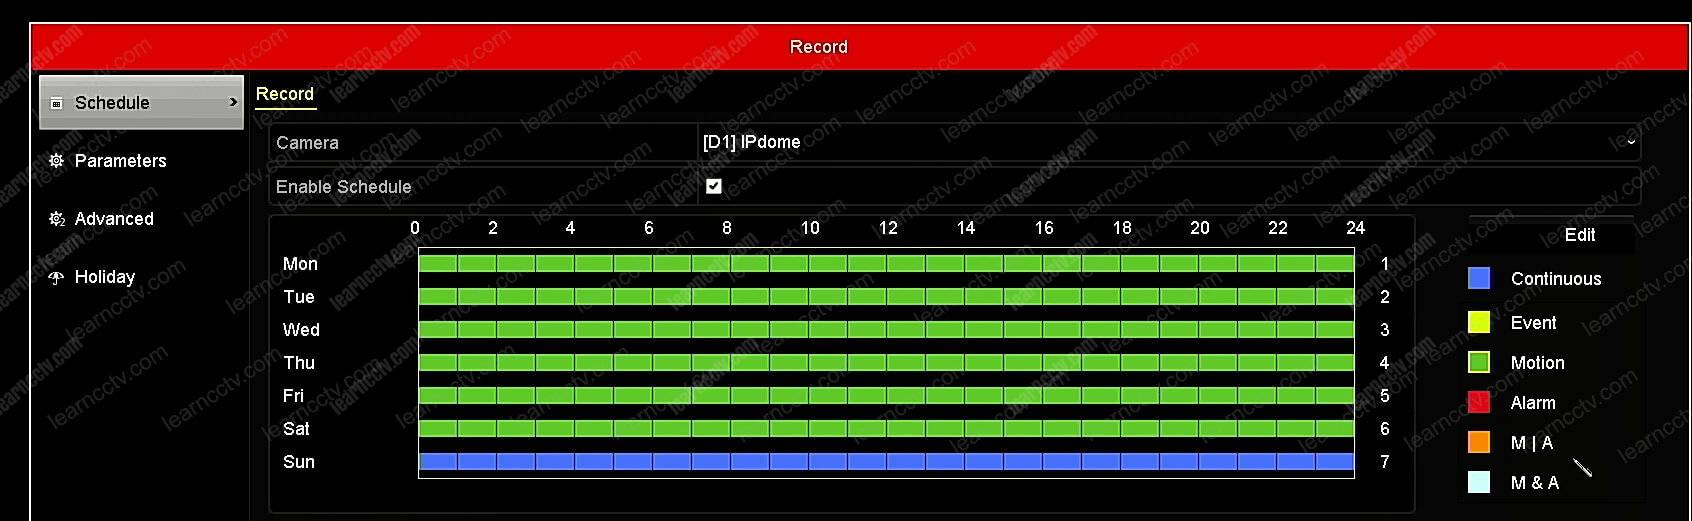 Hikvision NVR Record options